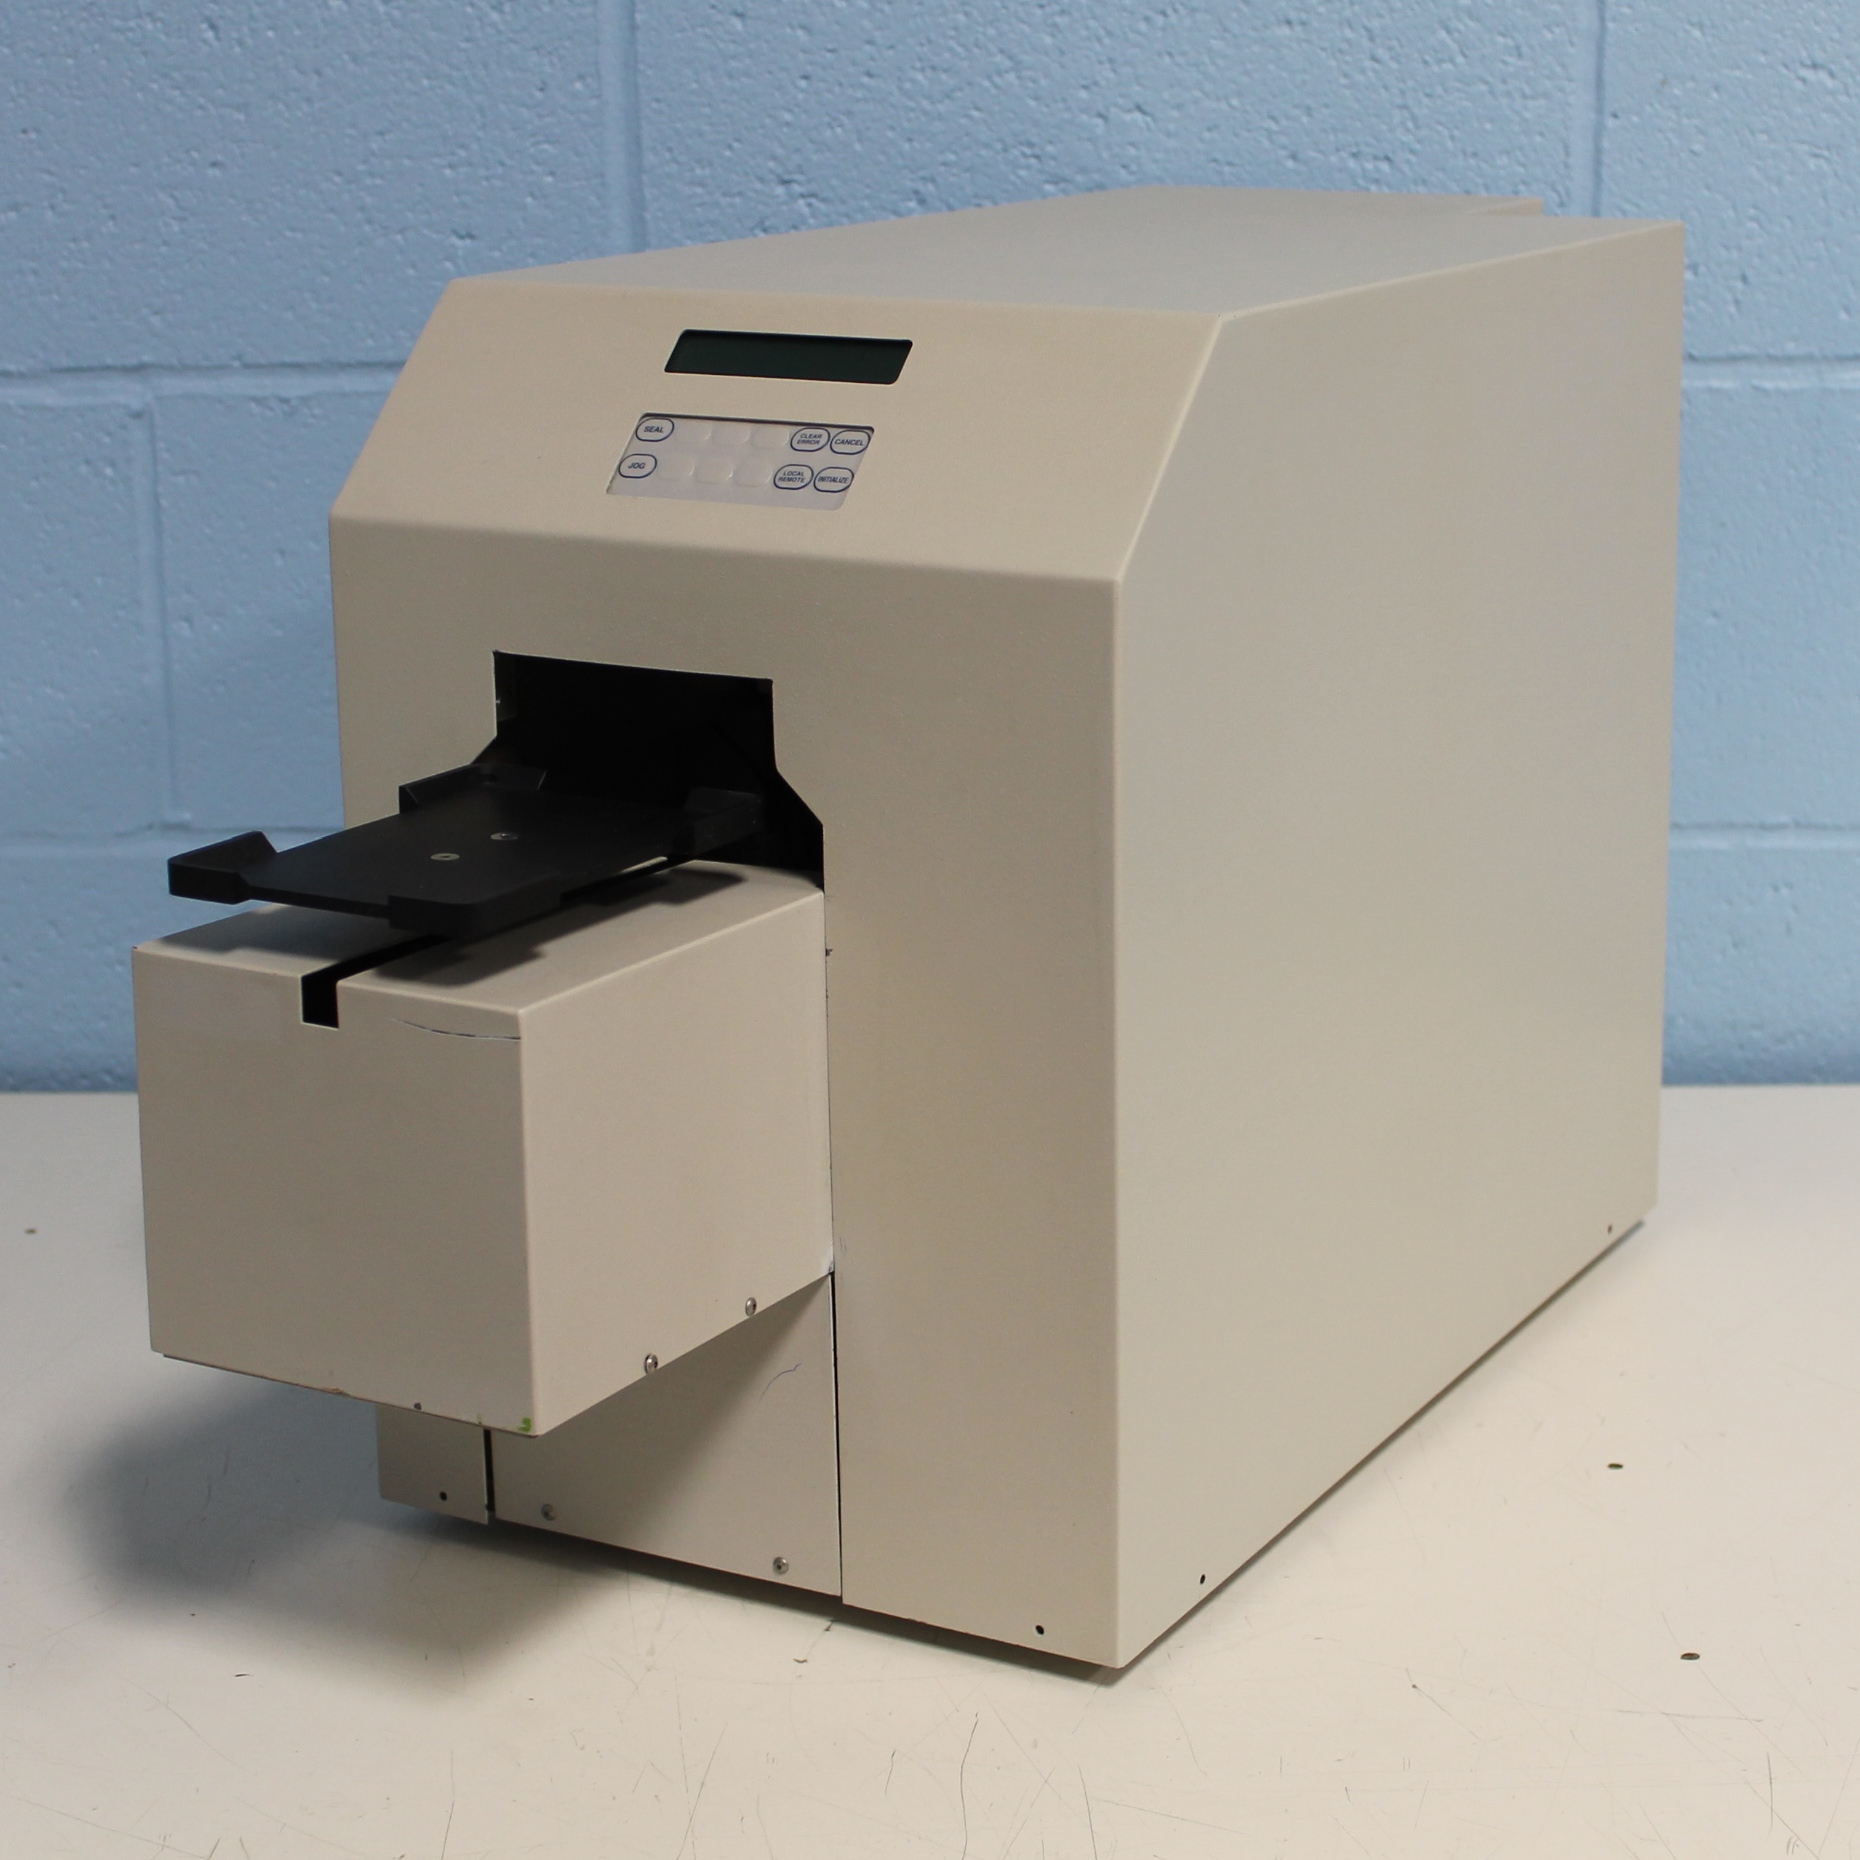 Beckman Coulter Microplate Sealing Station Image